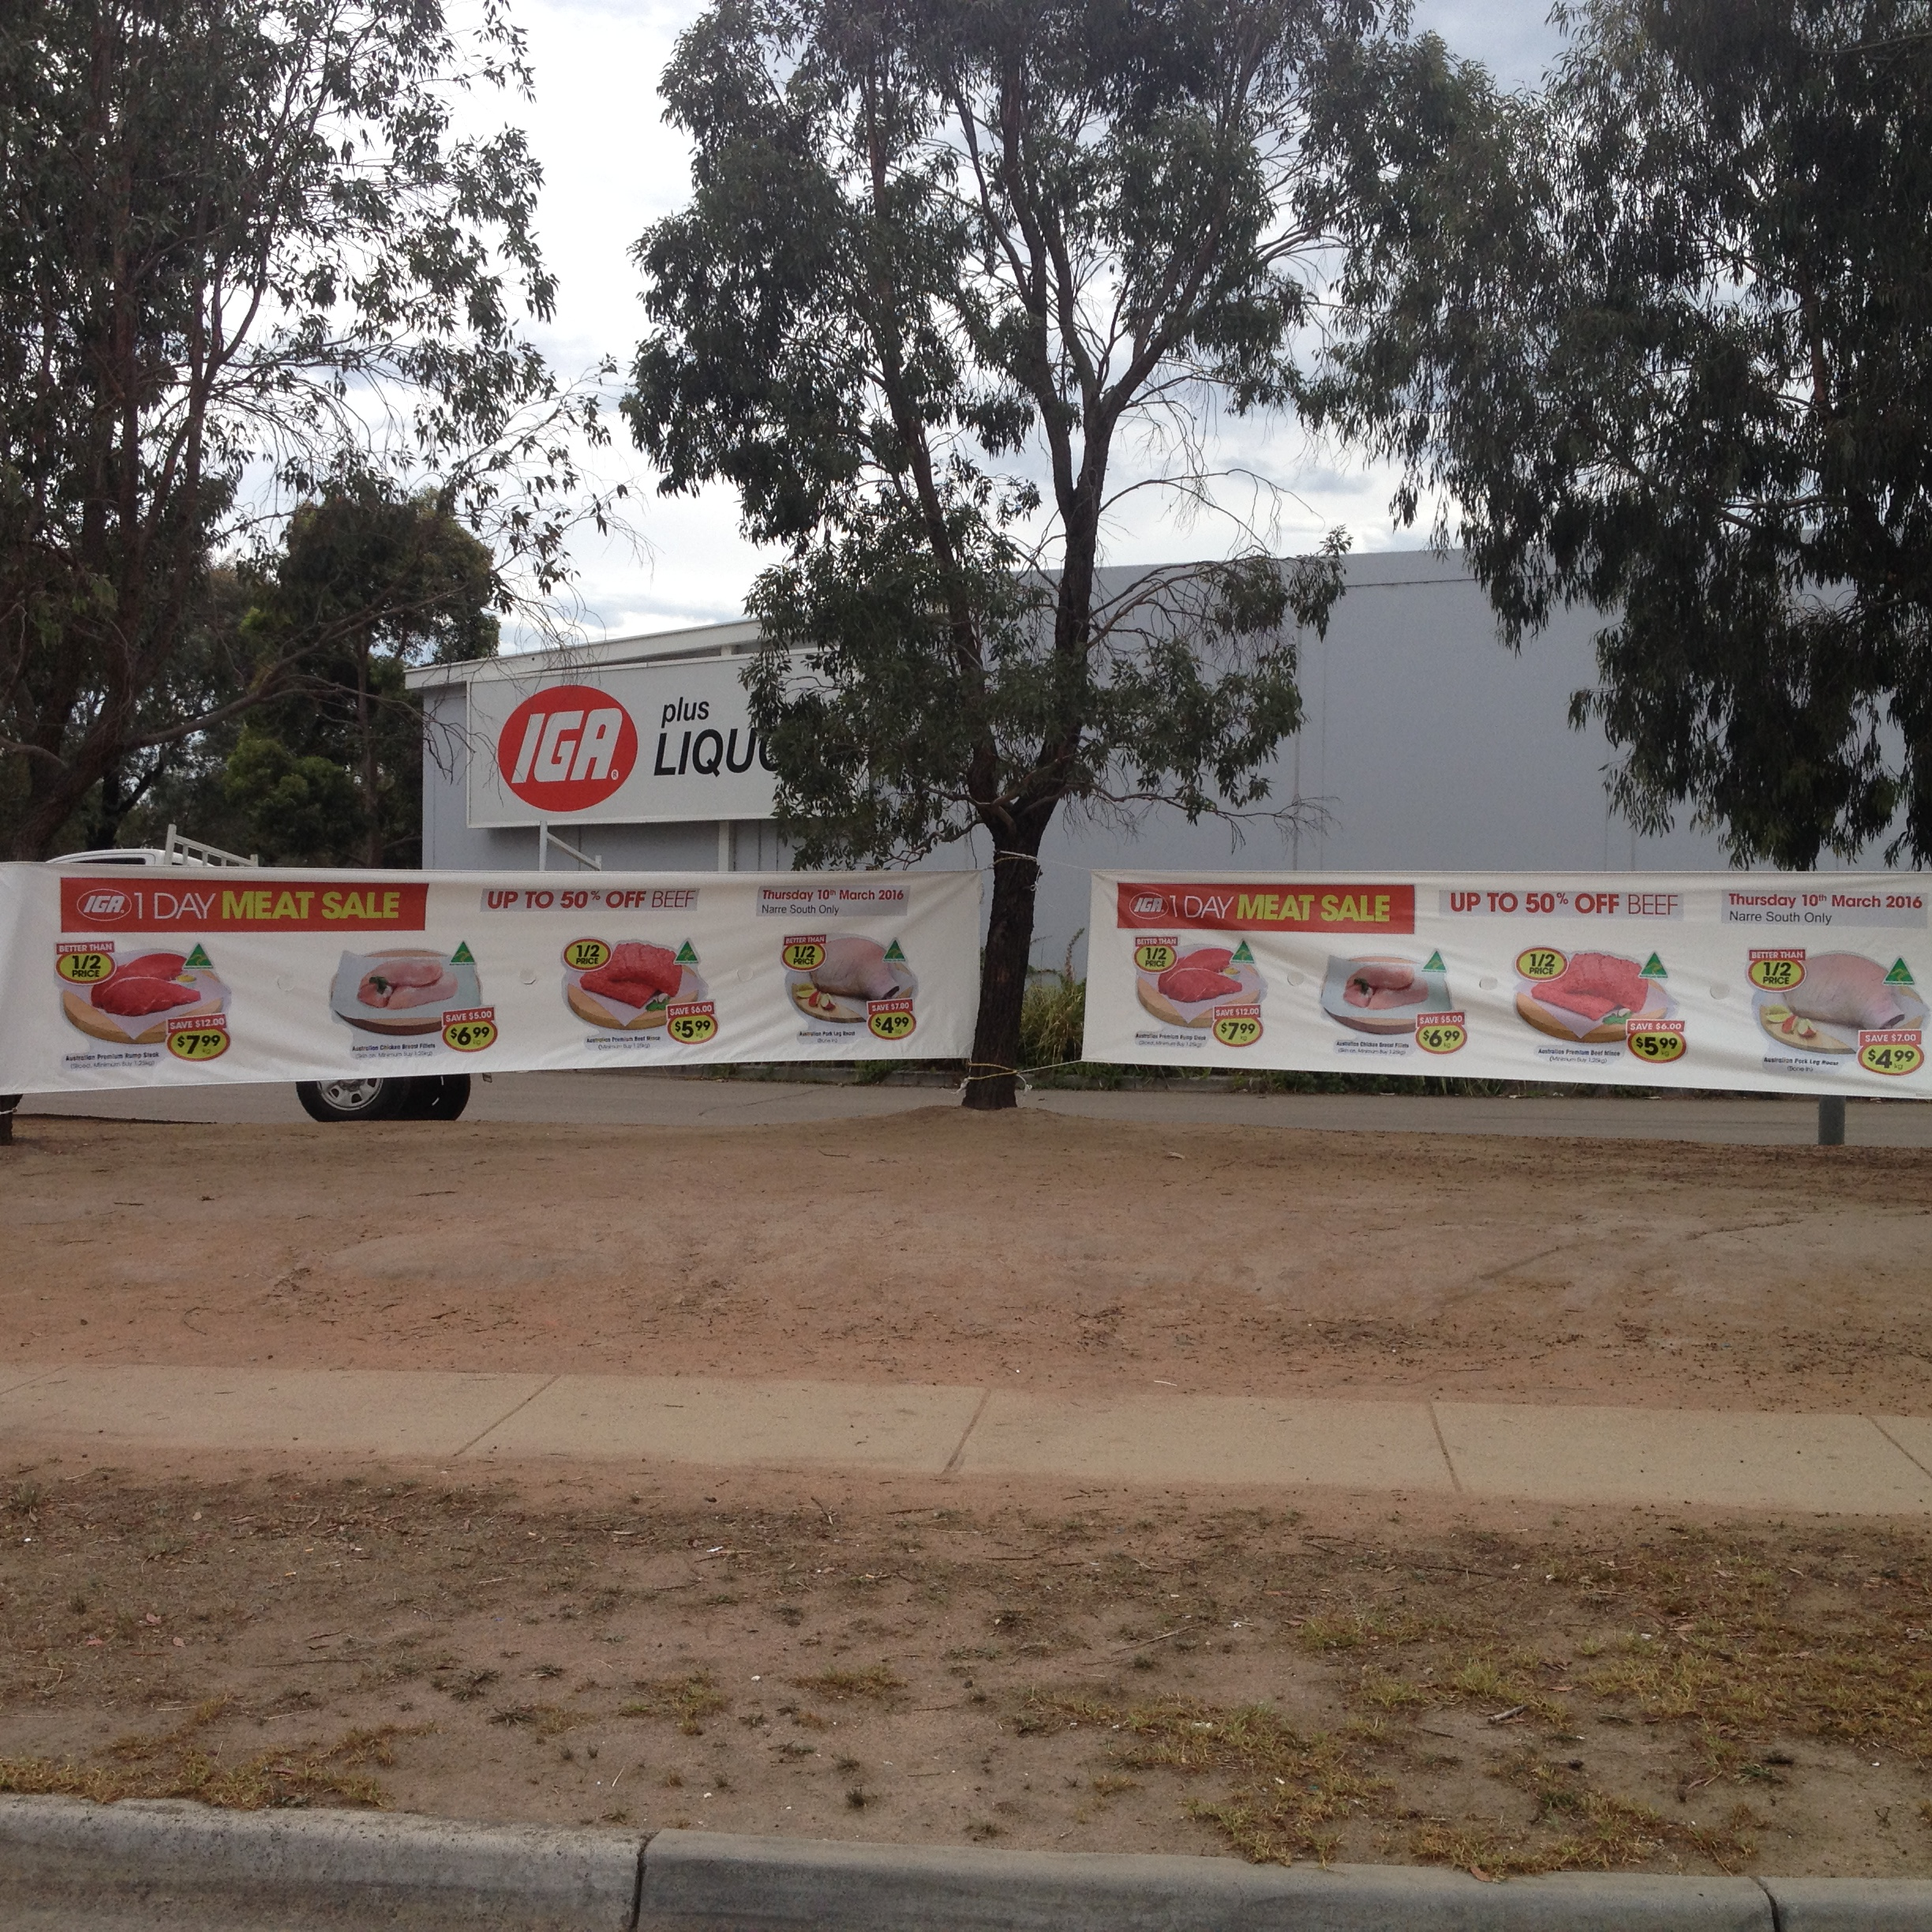 IGA banners can be seen clearly from quite some distance